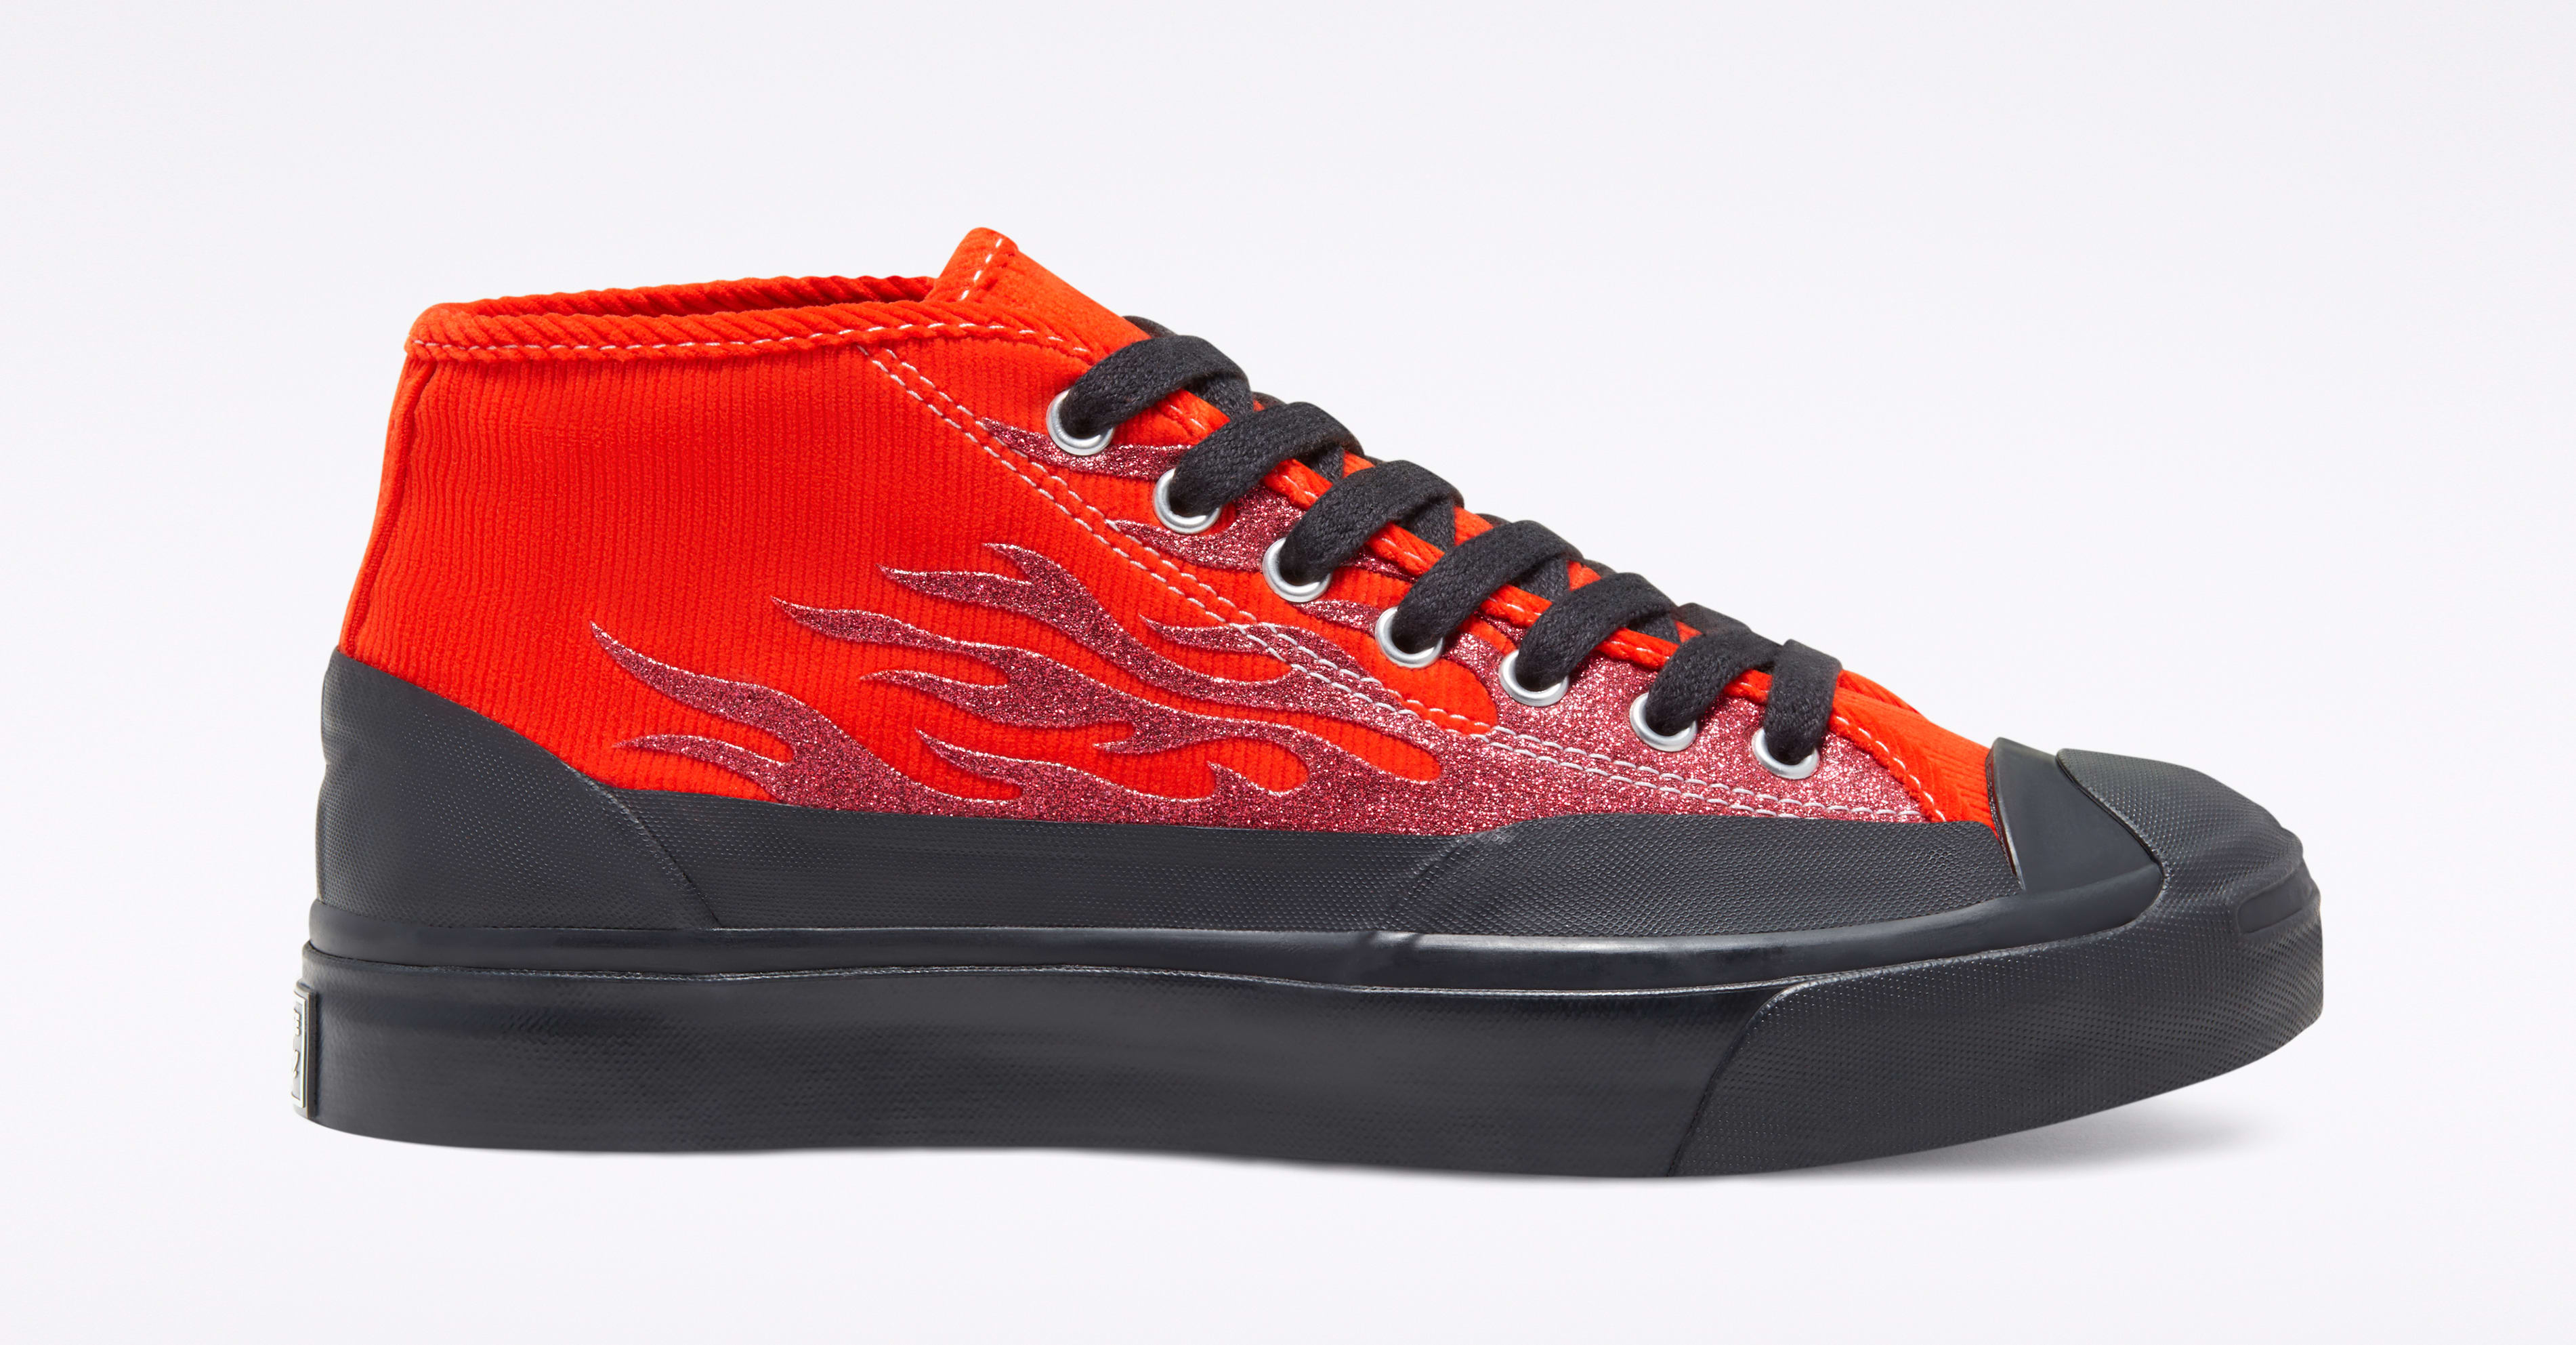 asap-nast-converse-jack-purcell-mid-red-167378c-lateral